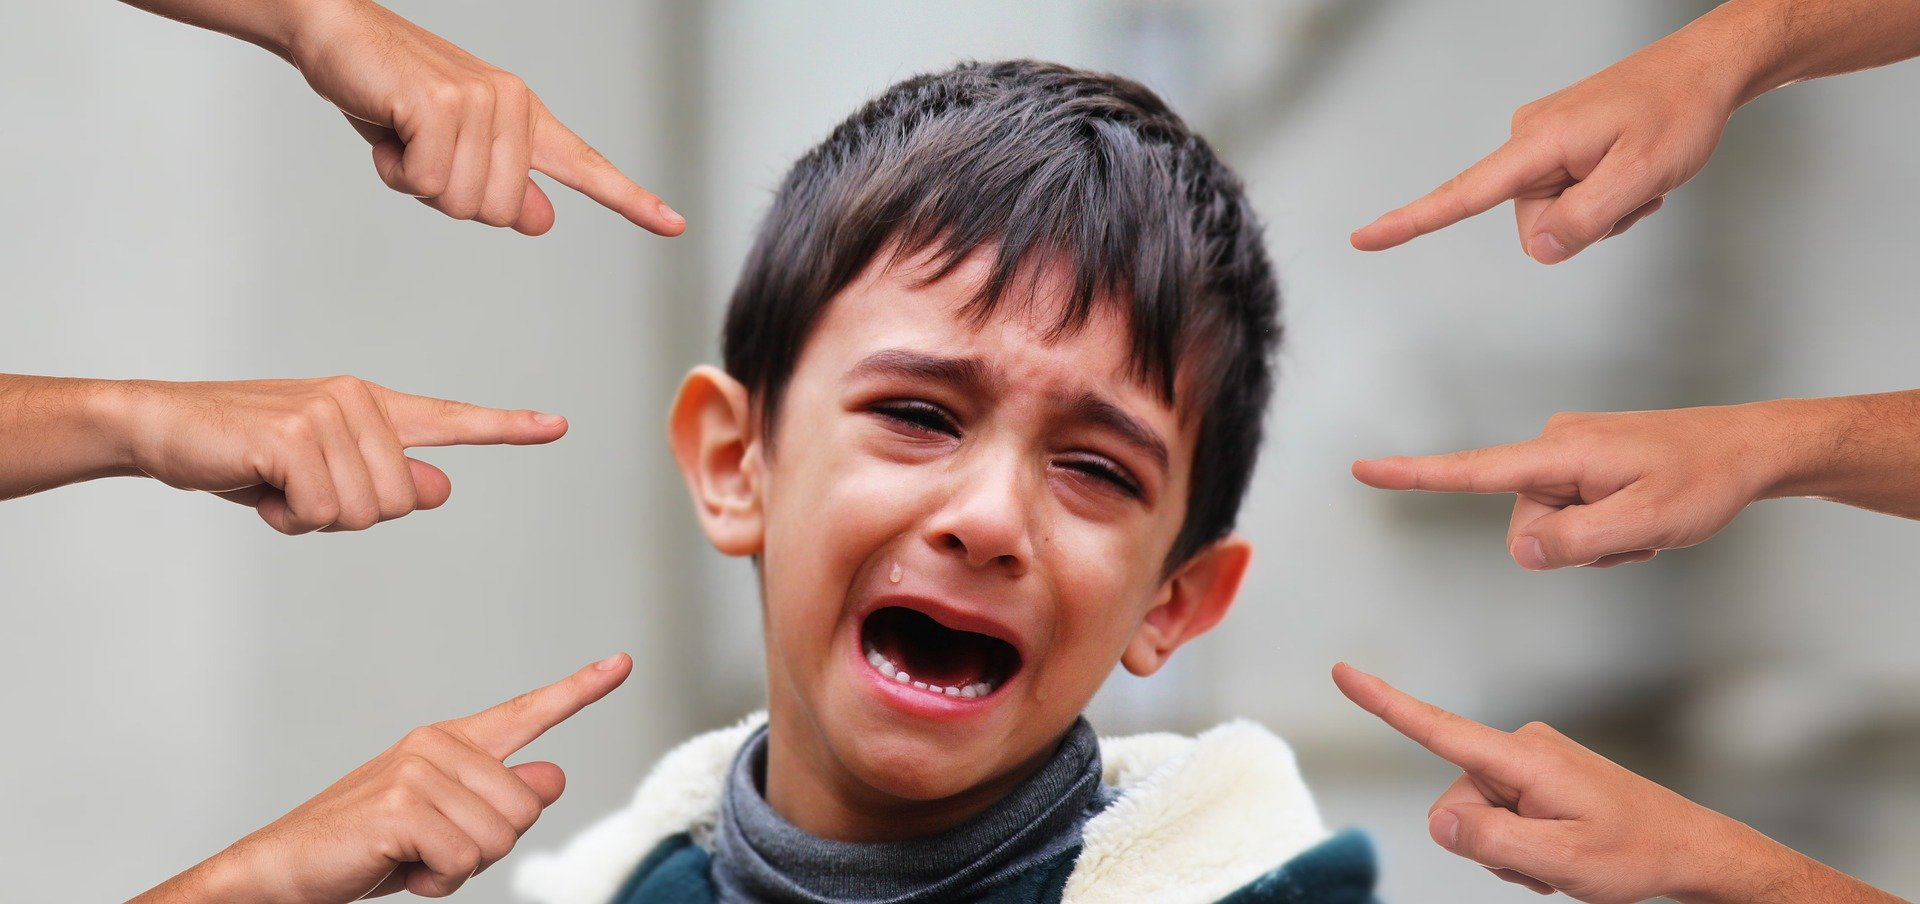 Boy in tears due to bullying